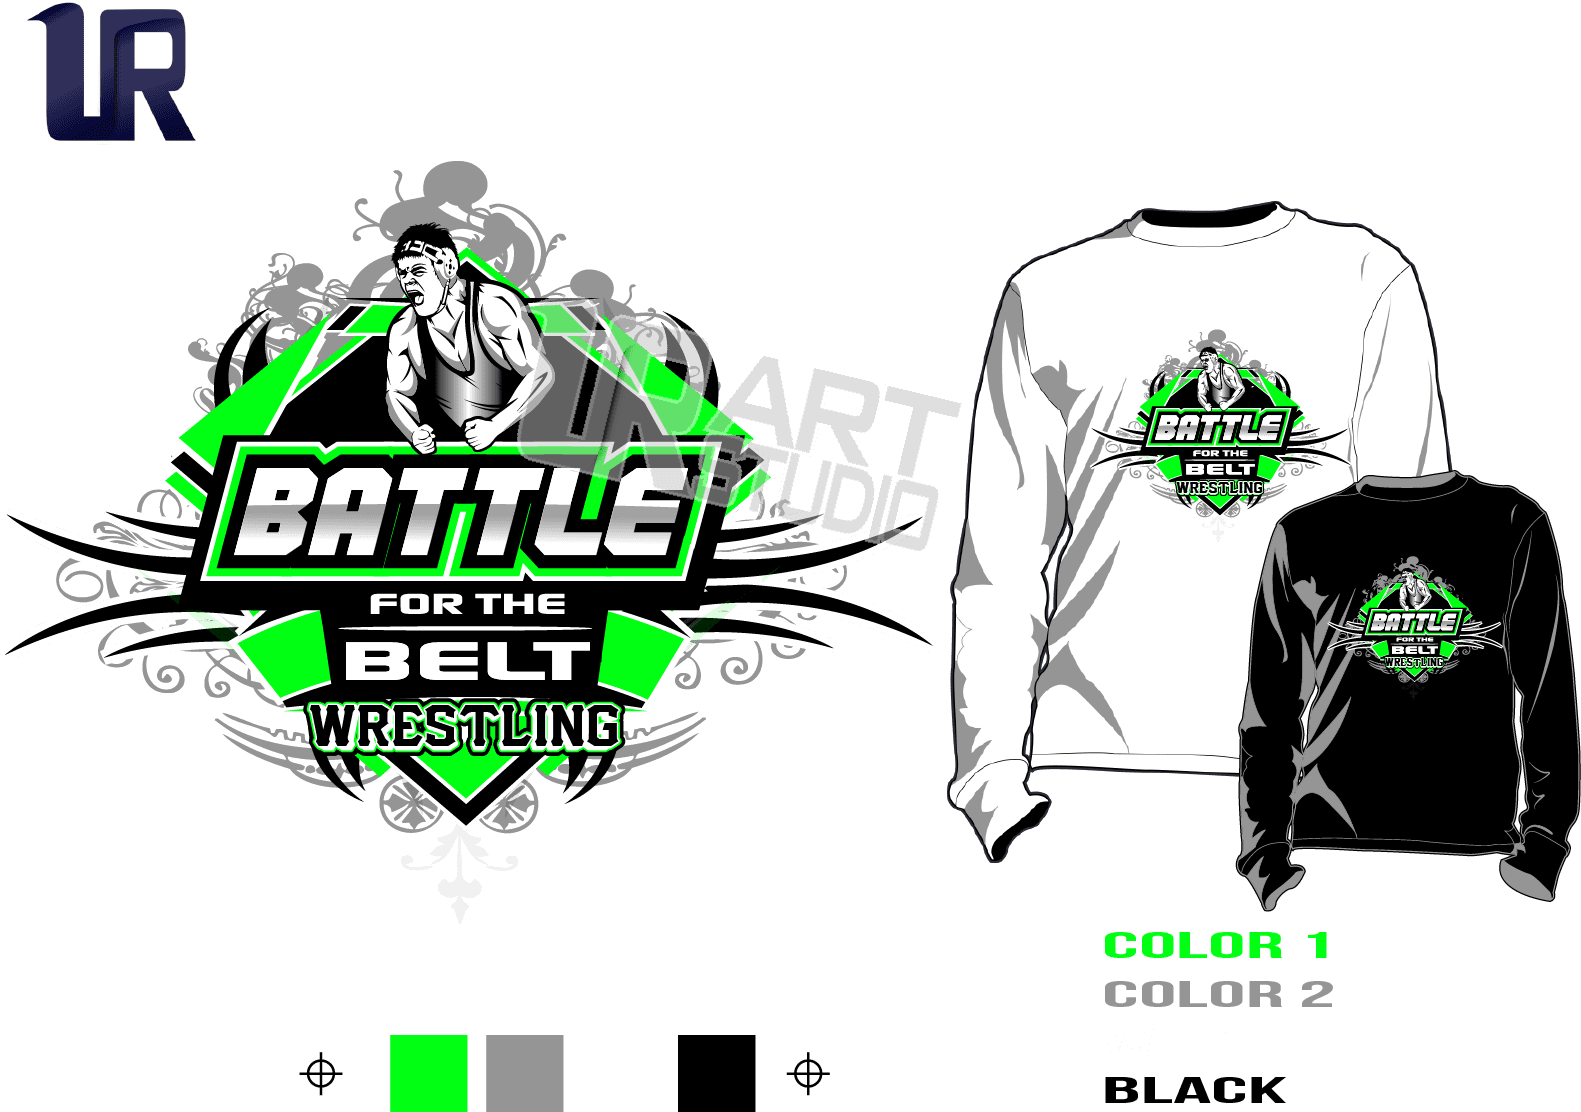 WRESTLING BATTLE FOR THE BELT tshirt vector design separated 4 color